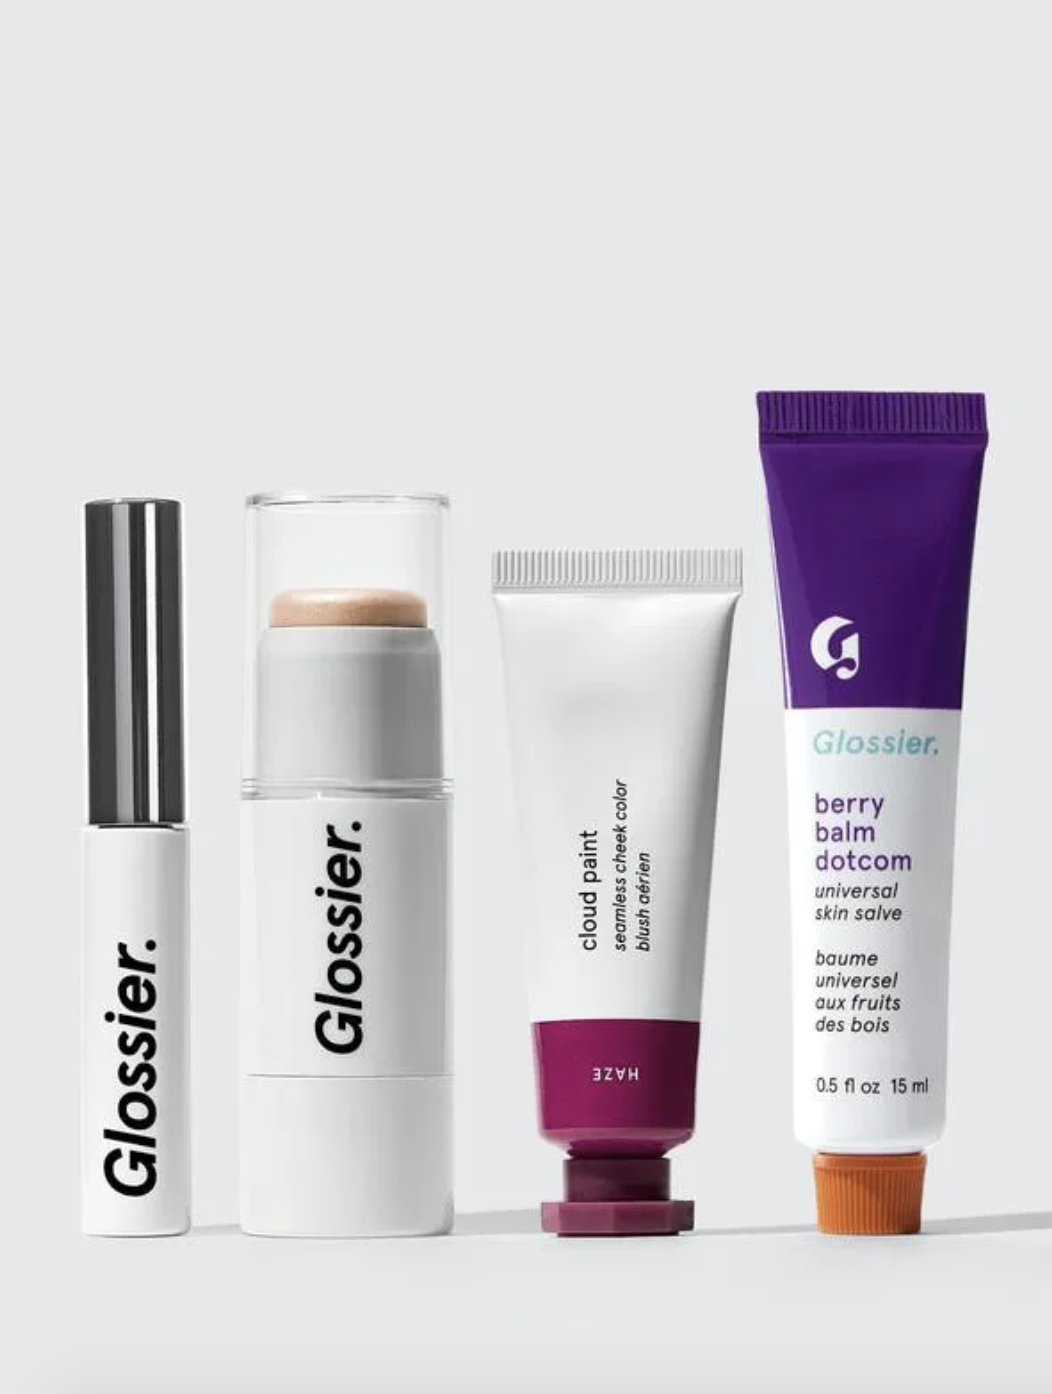 glossier makeup set, gifts for makeup lovers